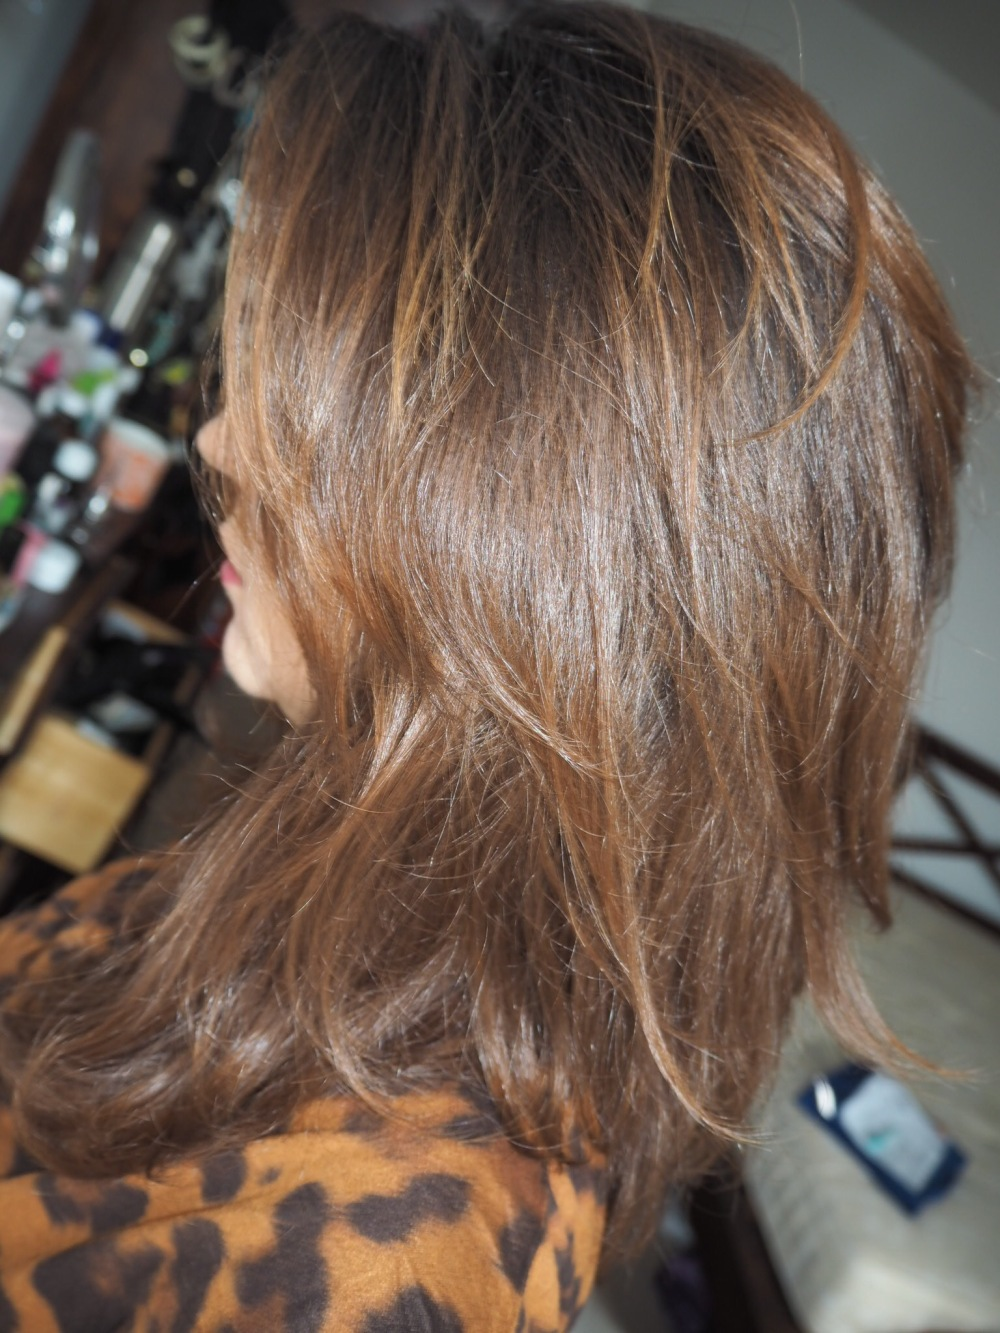 Olaplex No3 Curly hair amazon review- after photo smooth shiny brown hair